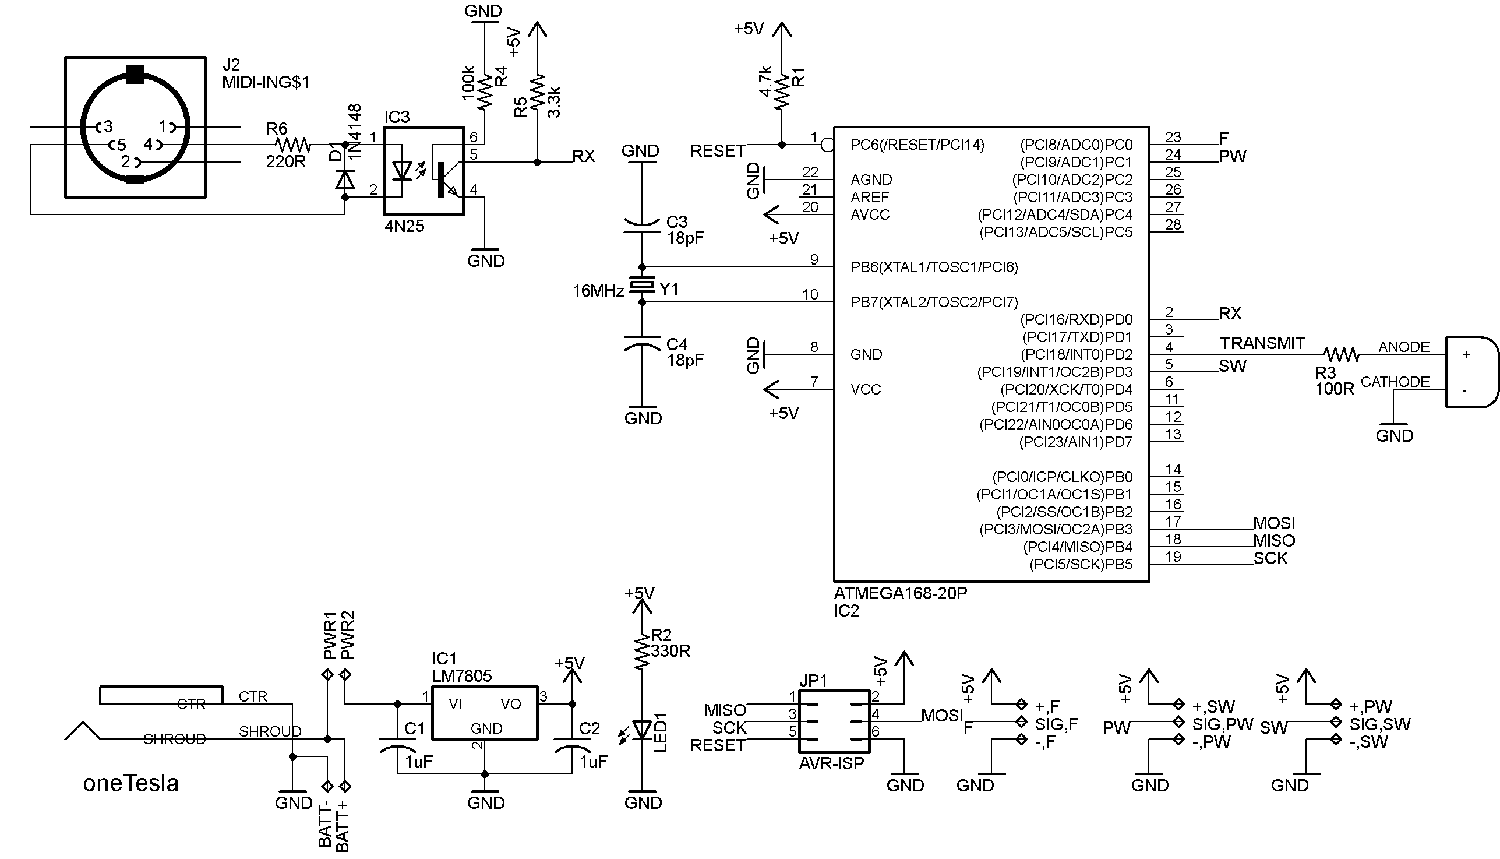 oneTesla Interrupter Schematic